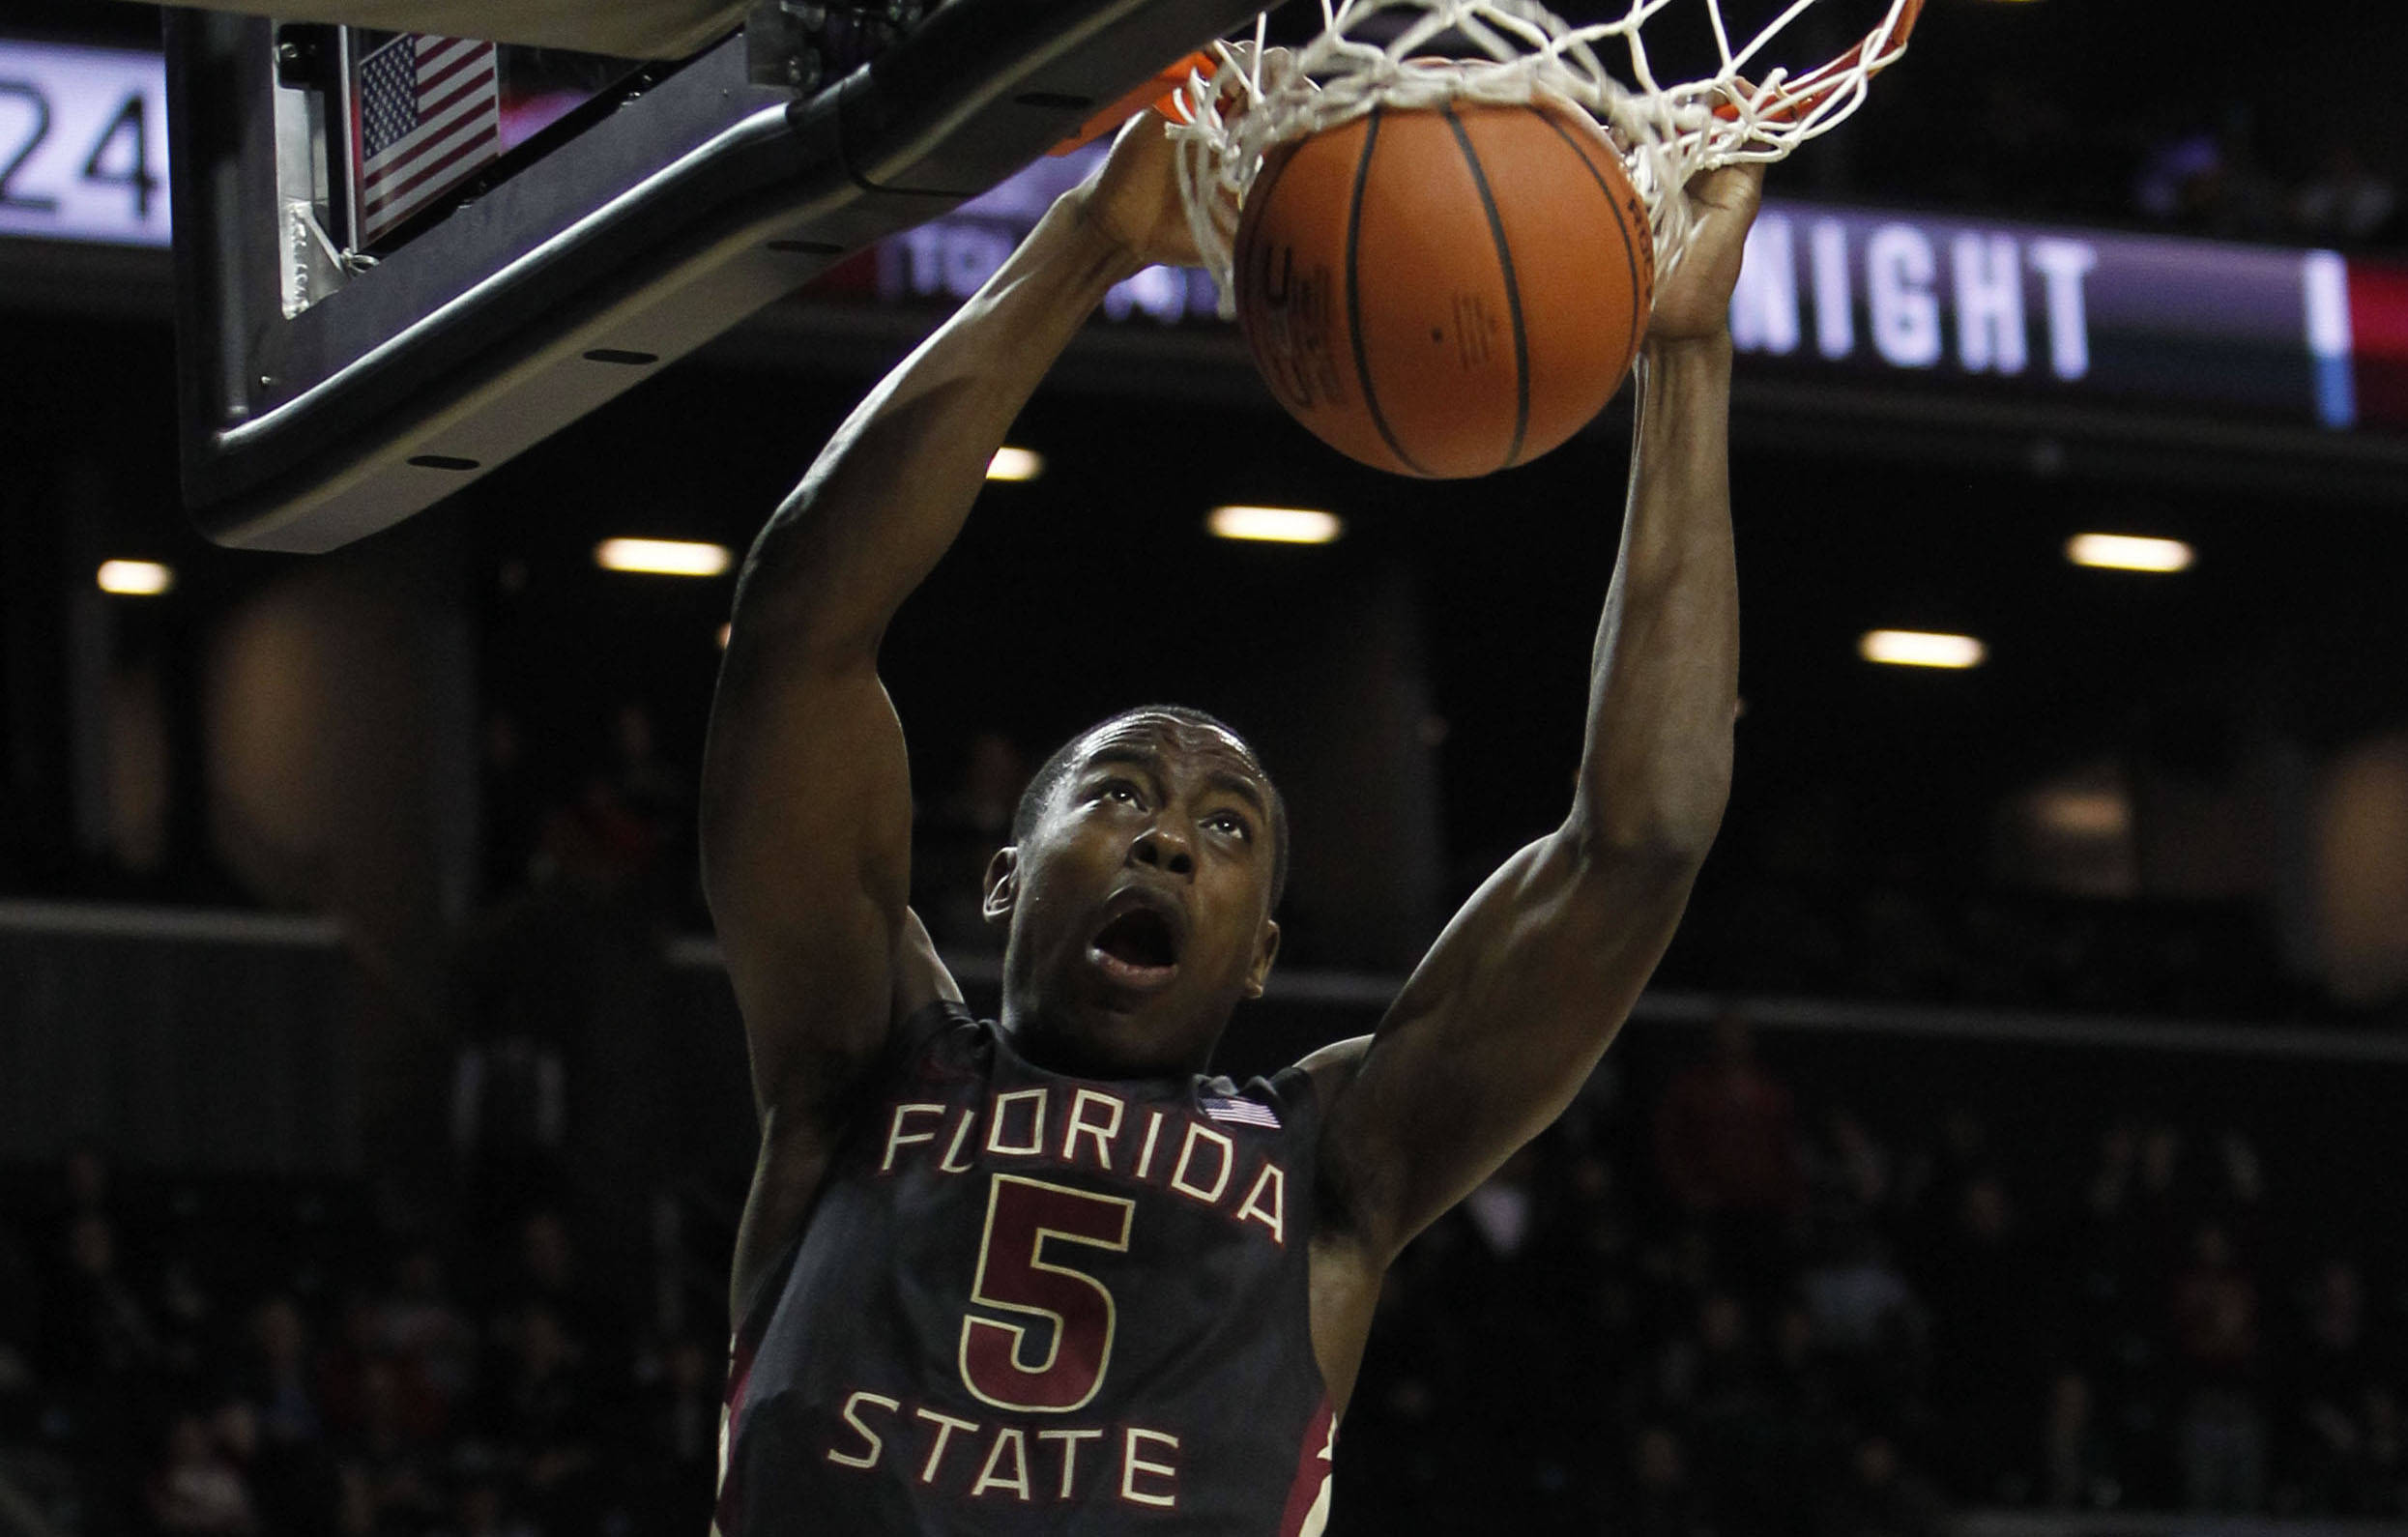 Florida State's Montay Brandon dunks the ball against Saint Joseph's during the first half. (AP Photo/Jason DeCrow)